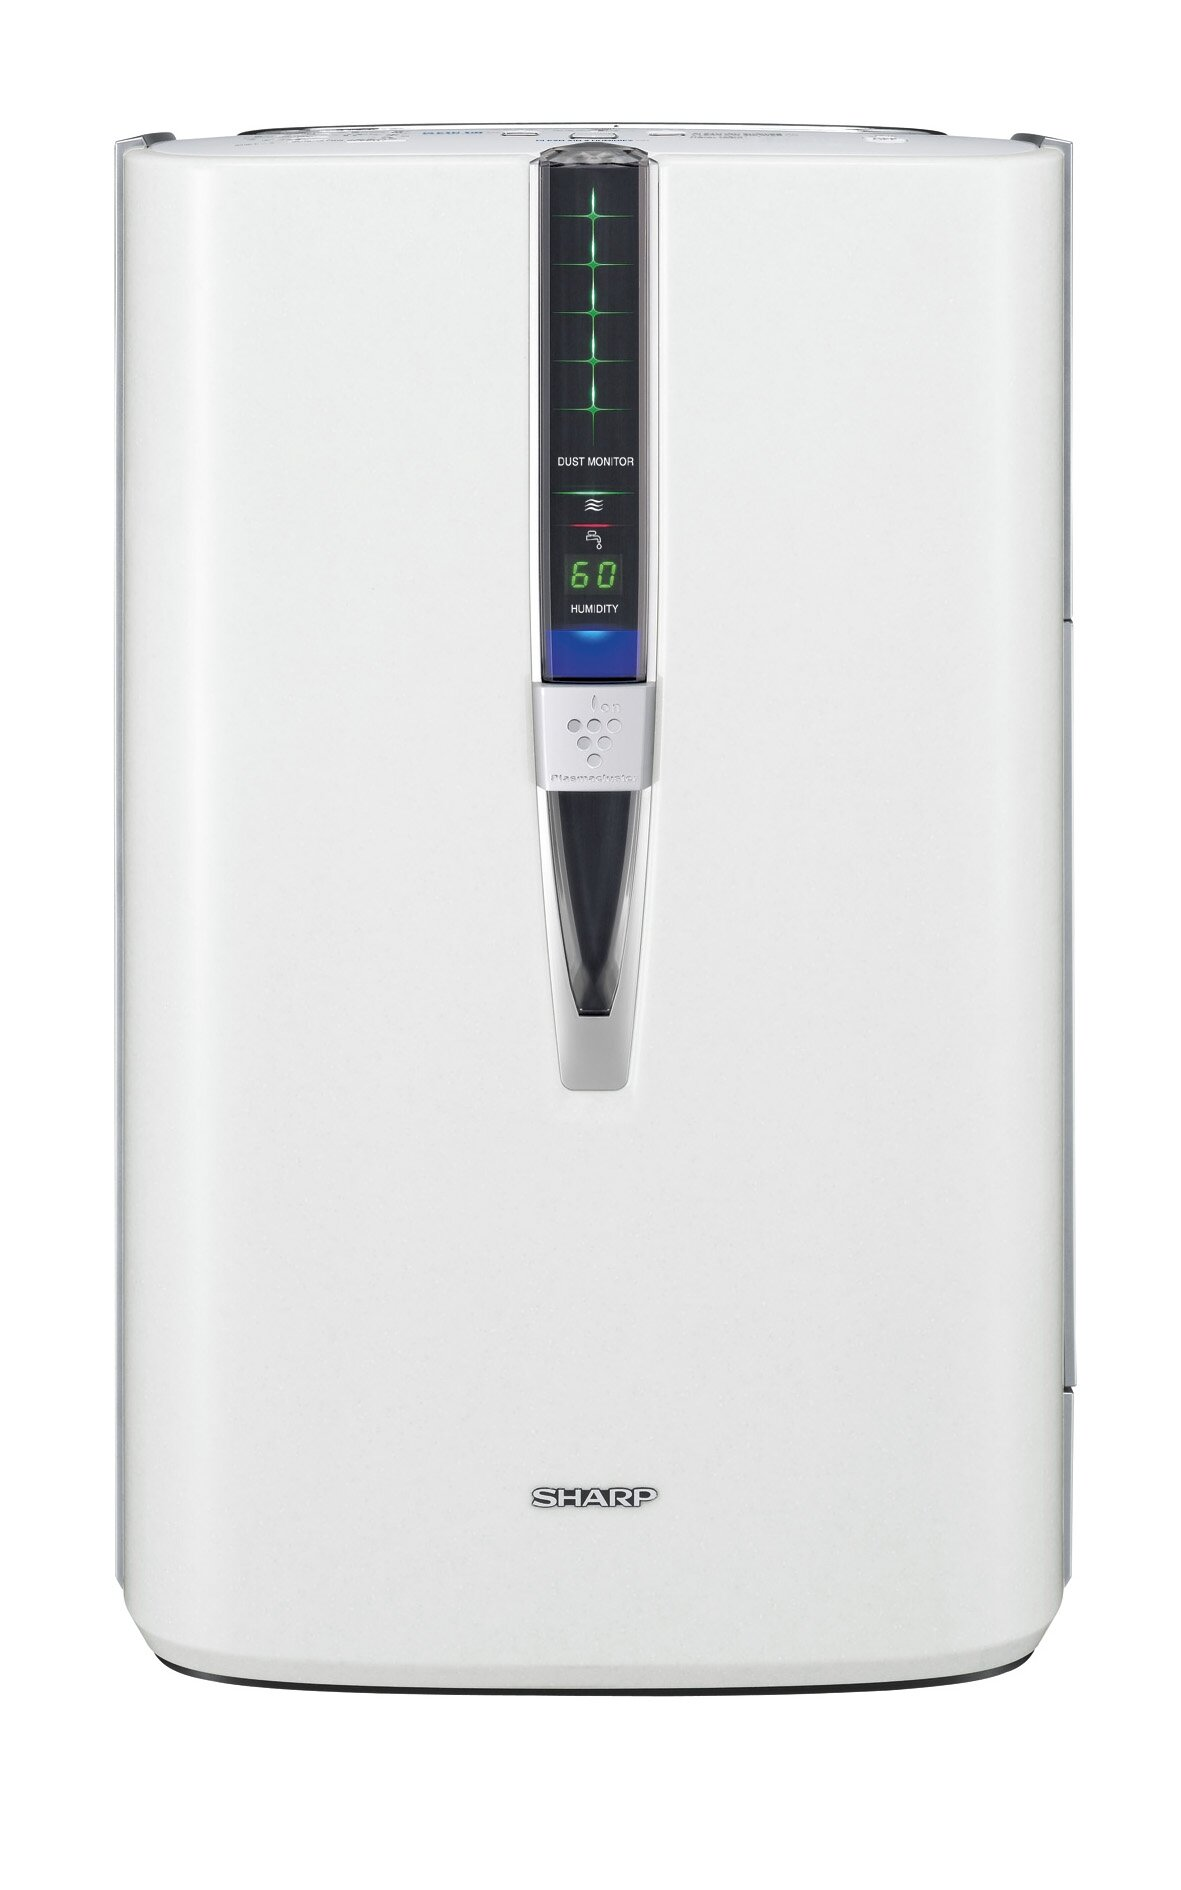 Sharp Sharp Air Room True HEPA Air Purifier 74000662605 eBay #2B66A0